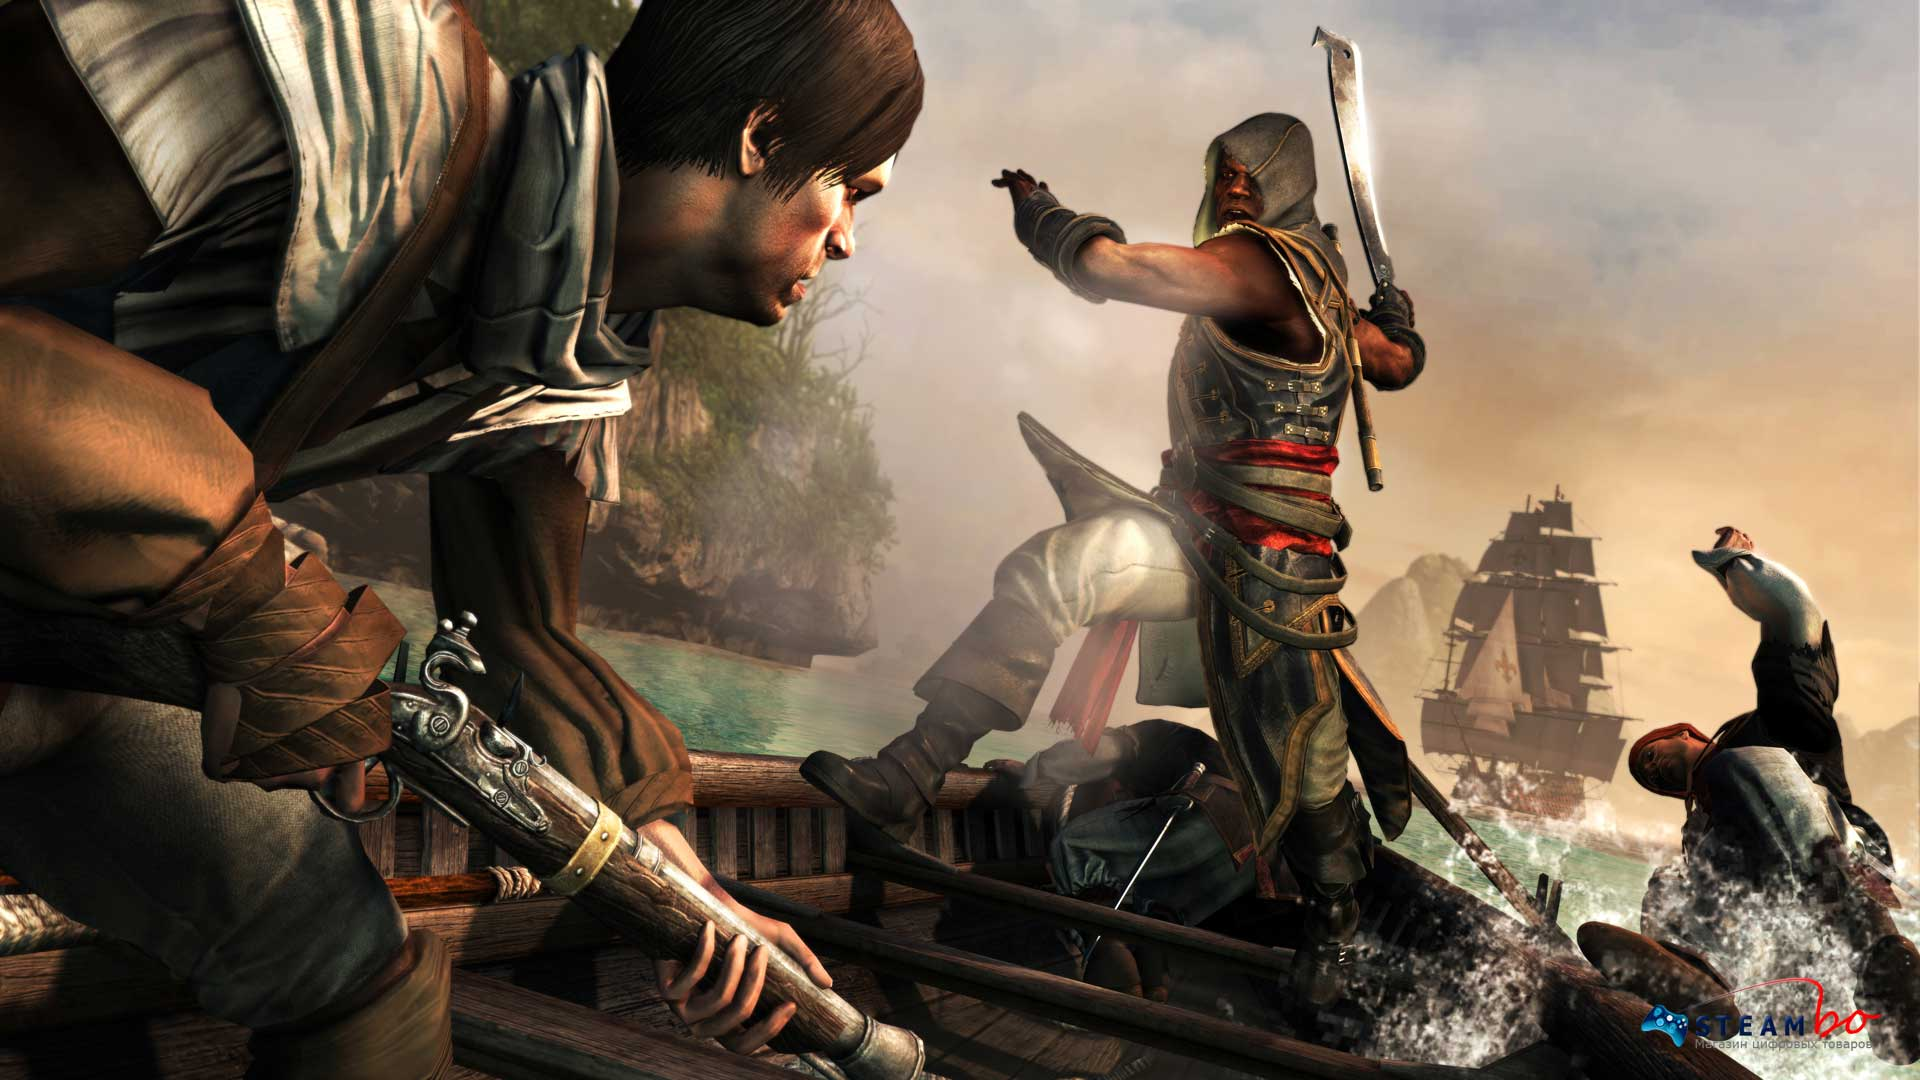 assassins creed iv black flag pc game free download - HD 1920×1080